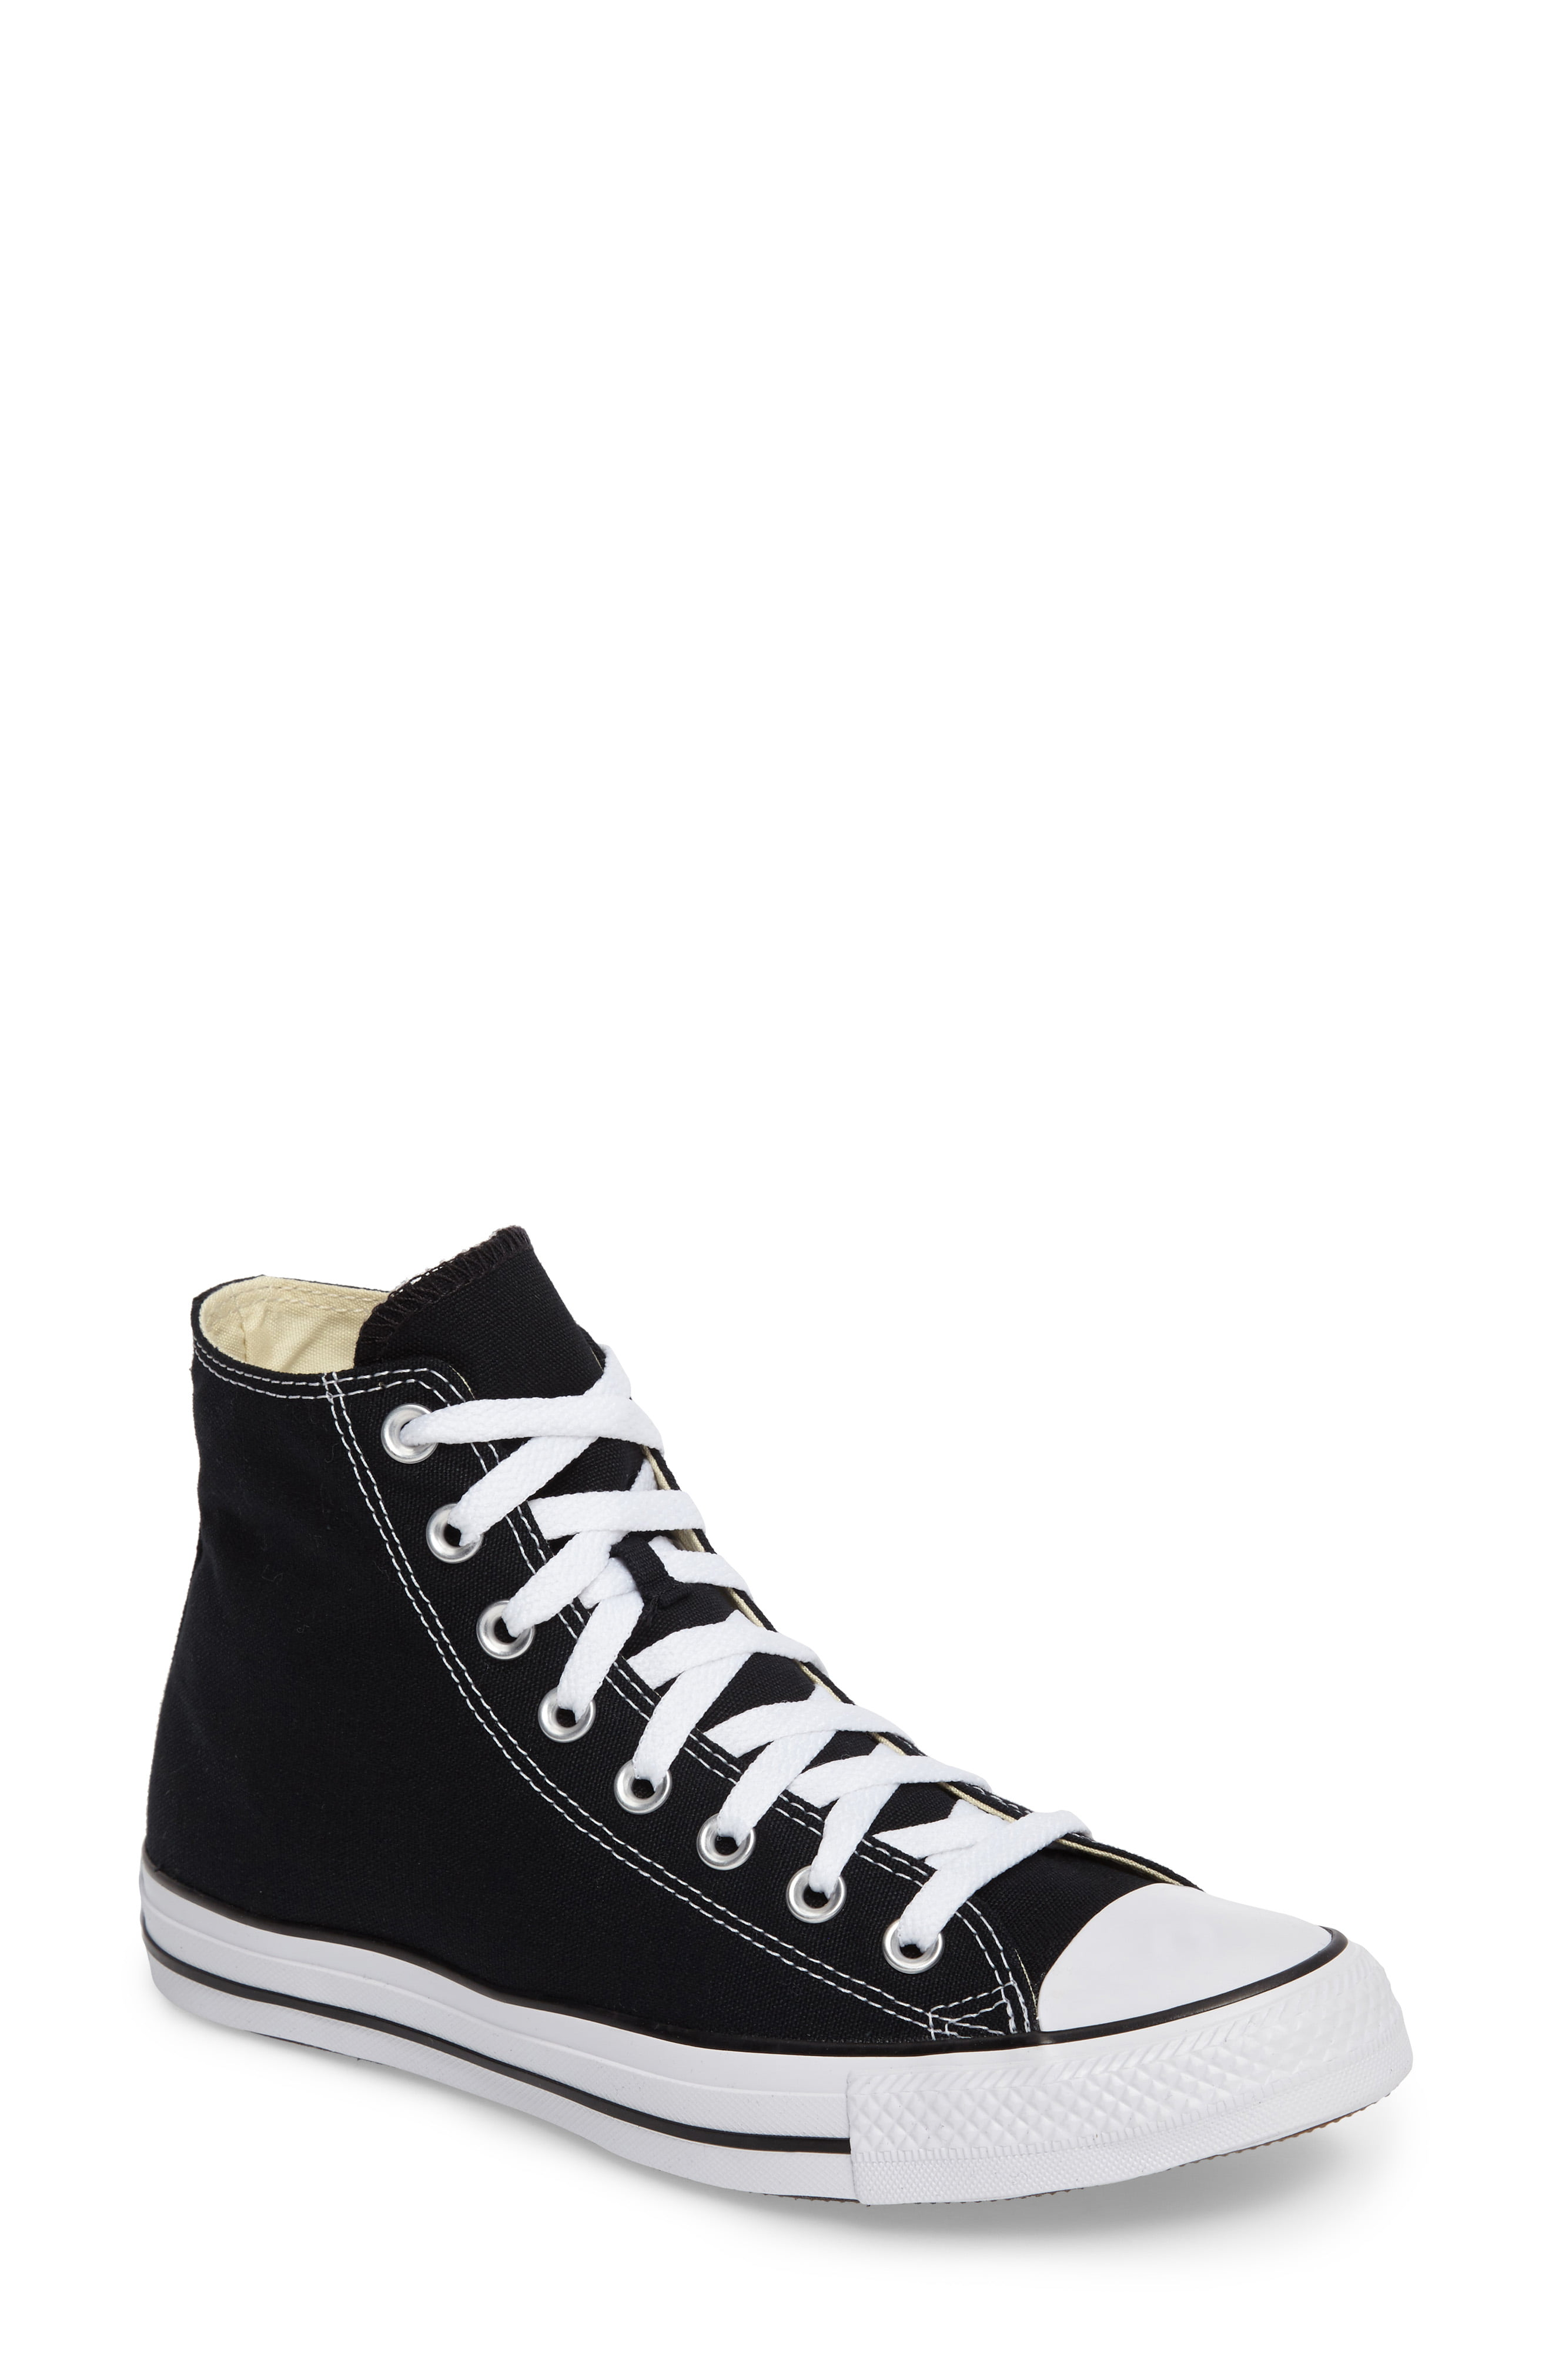 Chuck Taylor High Top Sneakers by Converse, available on nordstrom.com for $55 Kendall Jenner Shoes Exact Product